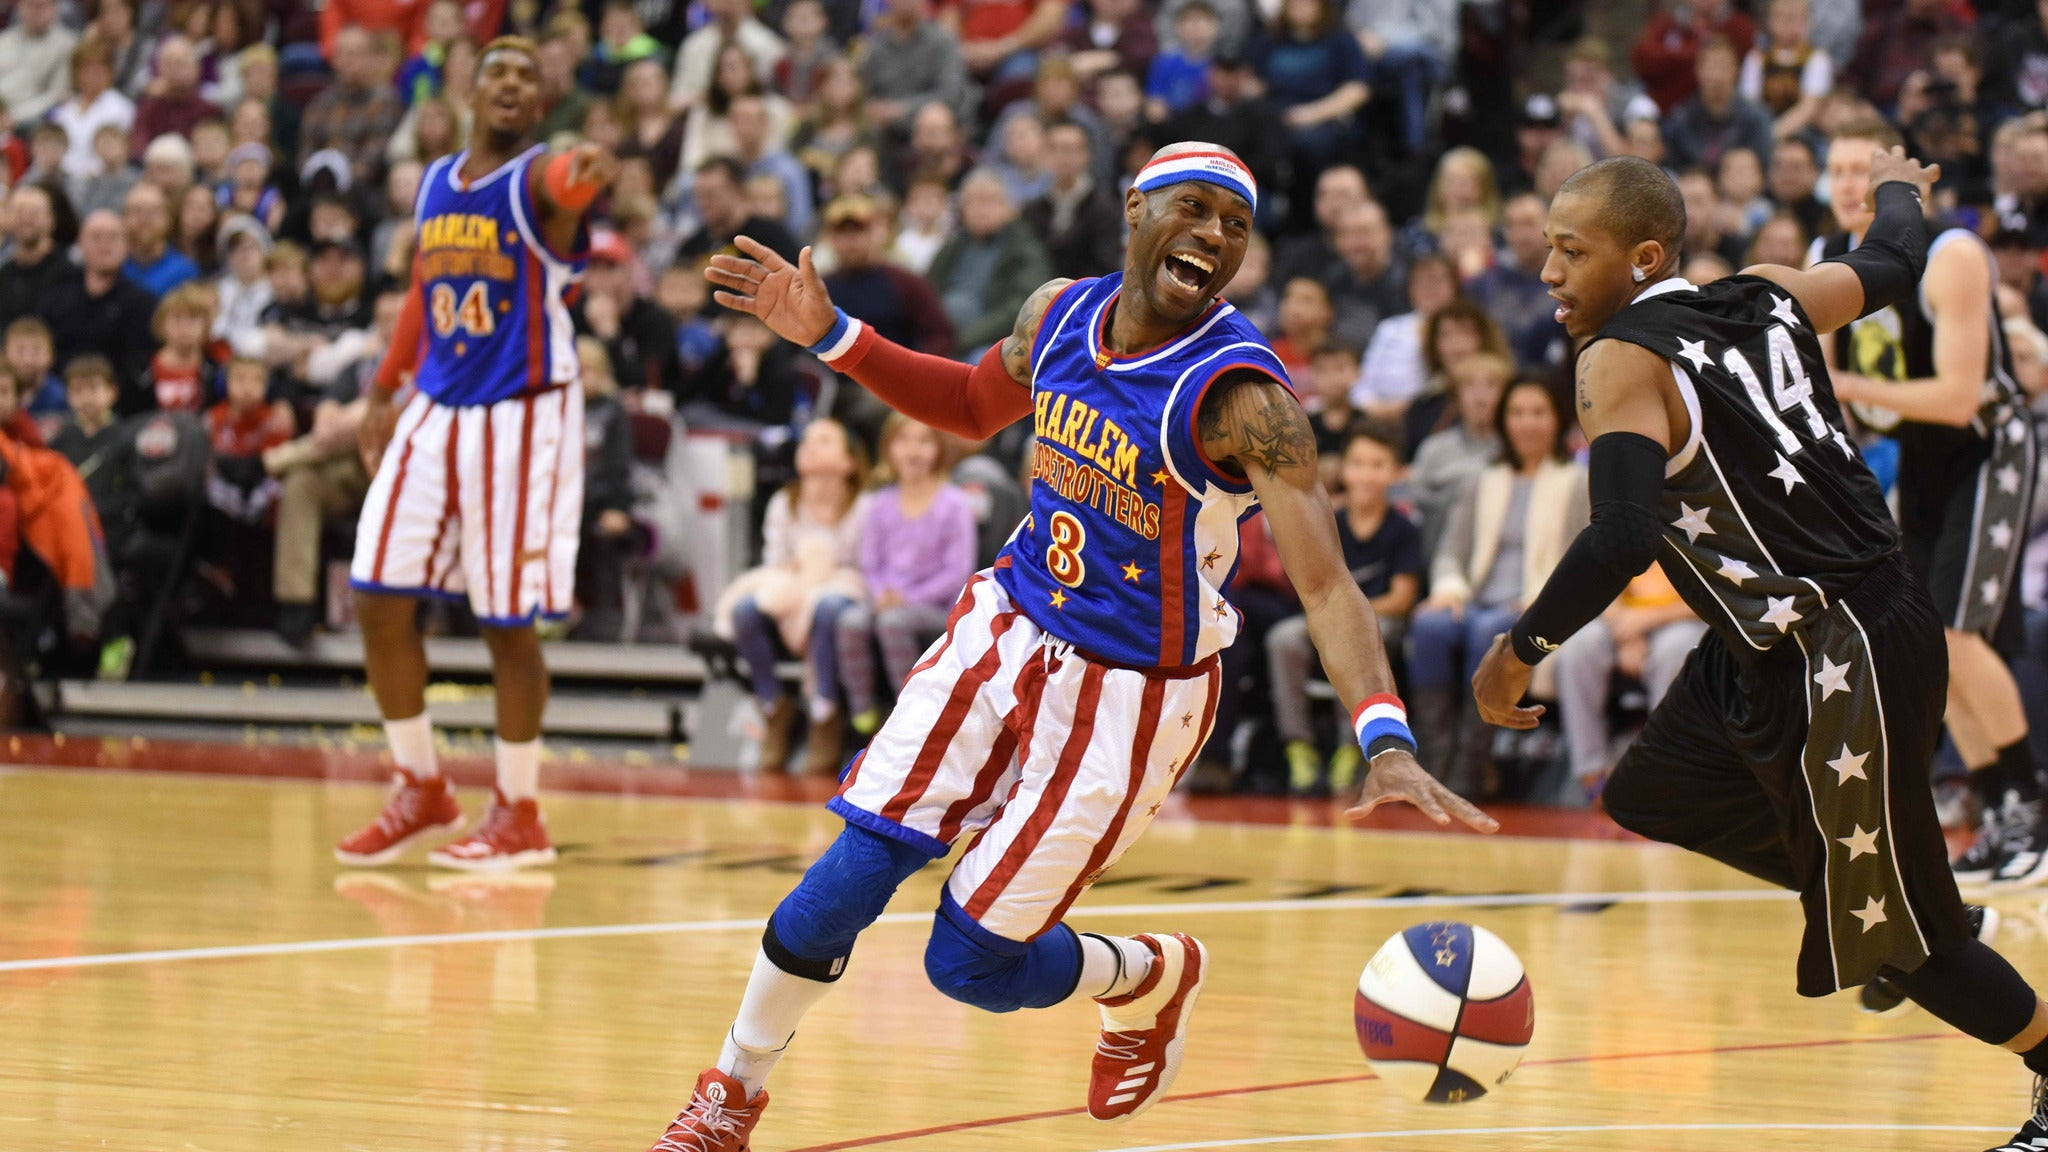 Harlem Globetrotters at CFSB Center